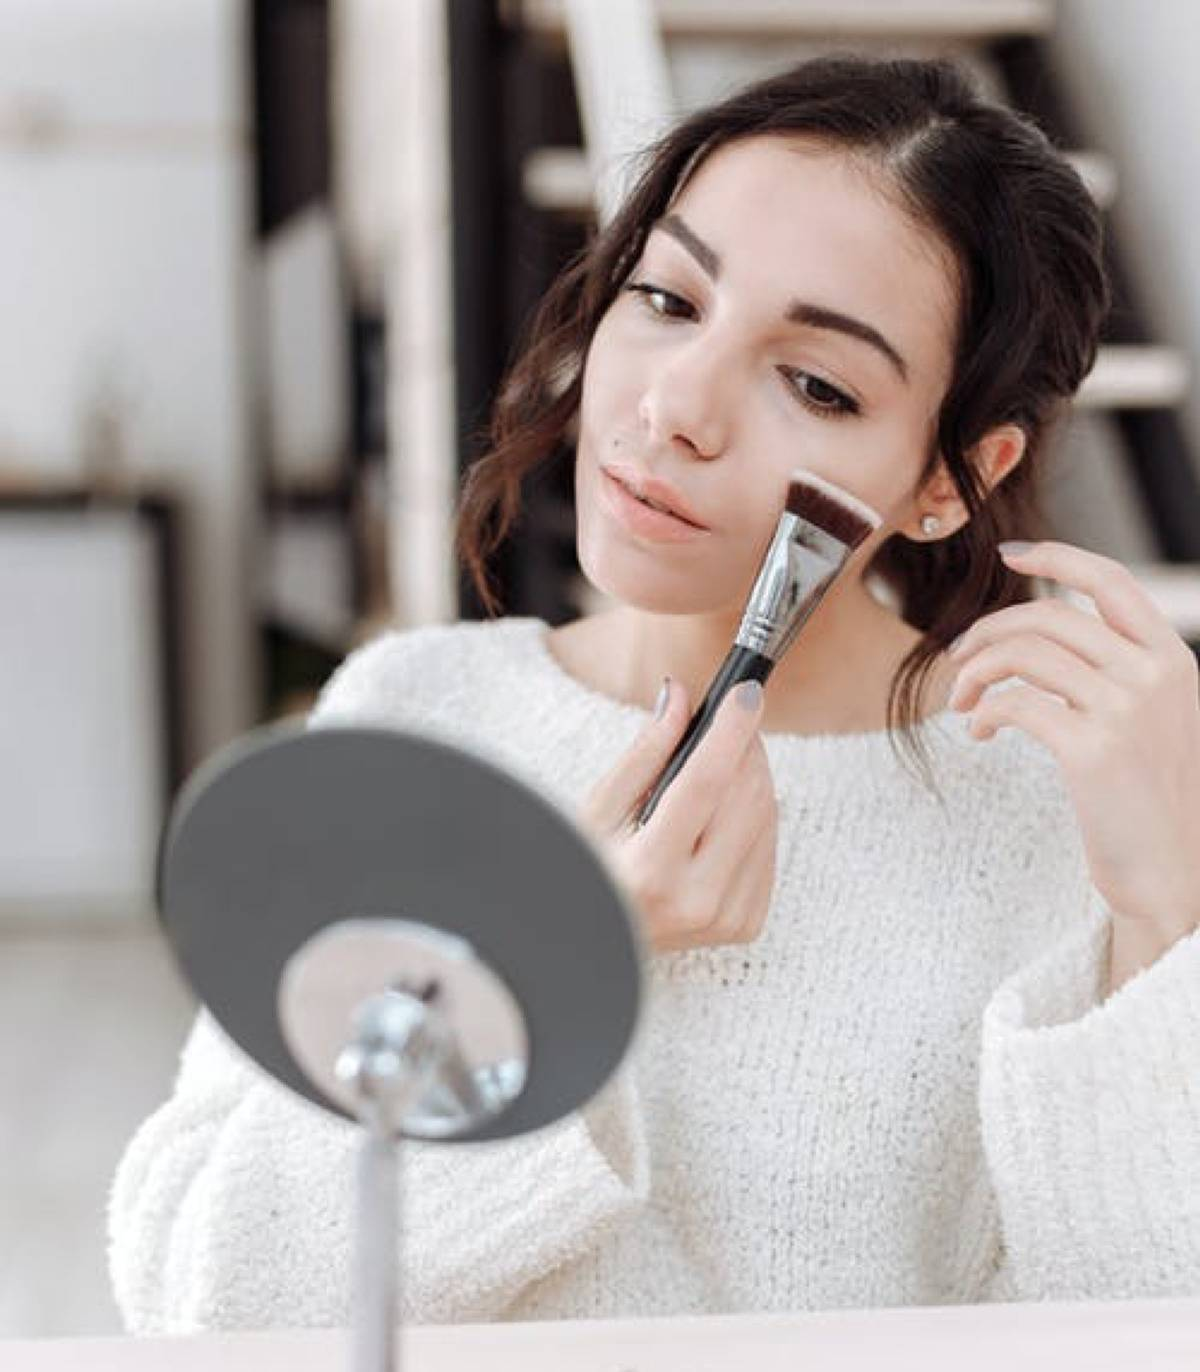 woman putting makeup on in the mirror